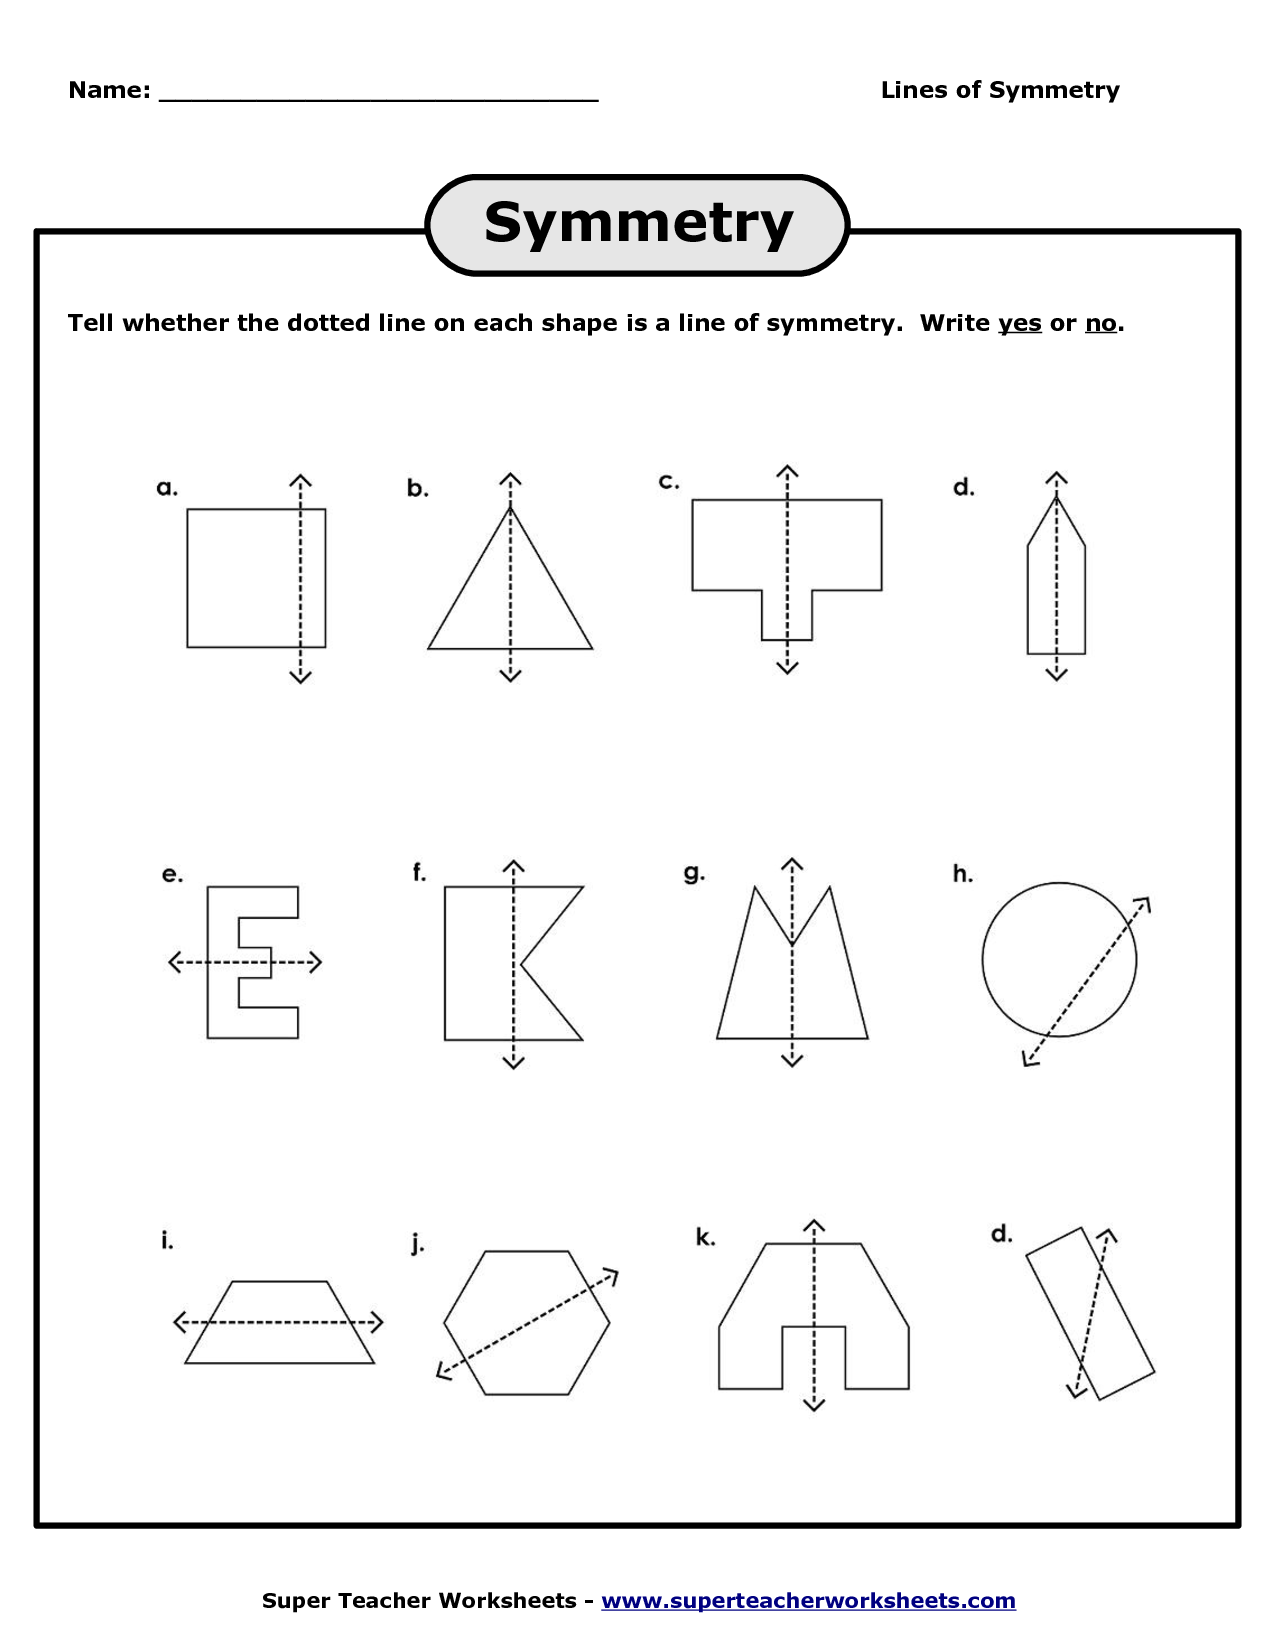 lines of symmetry worksheets | Lines of Symmetry Worksheet - PDF ...